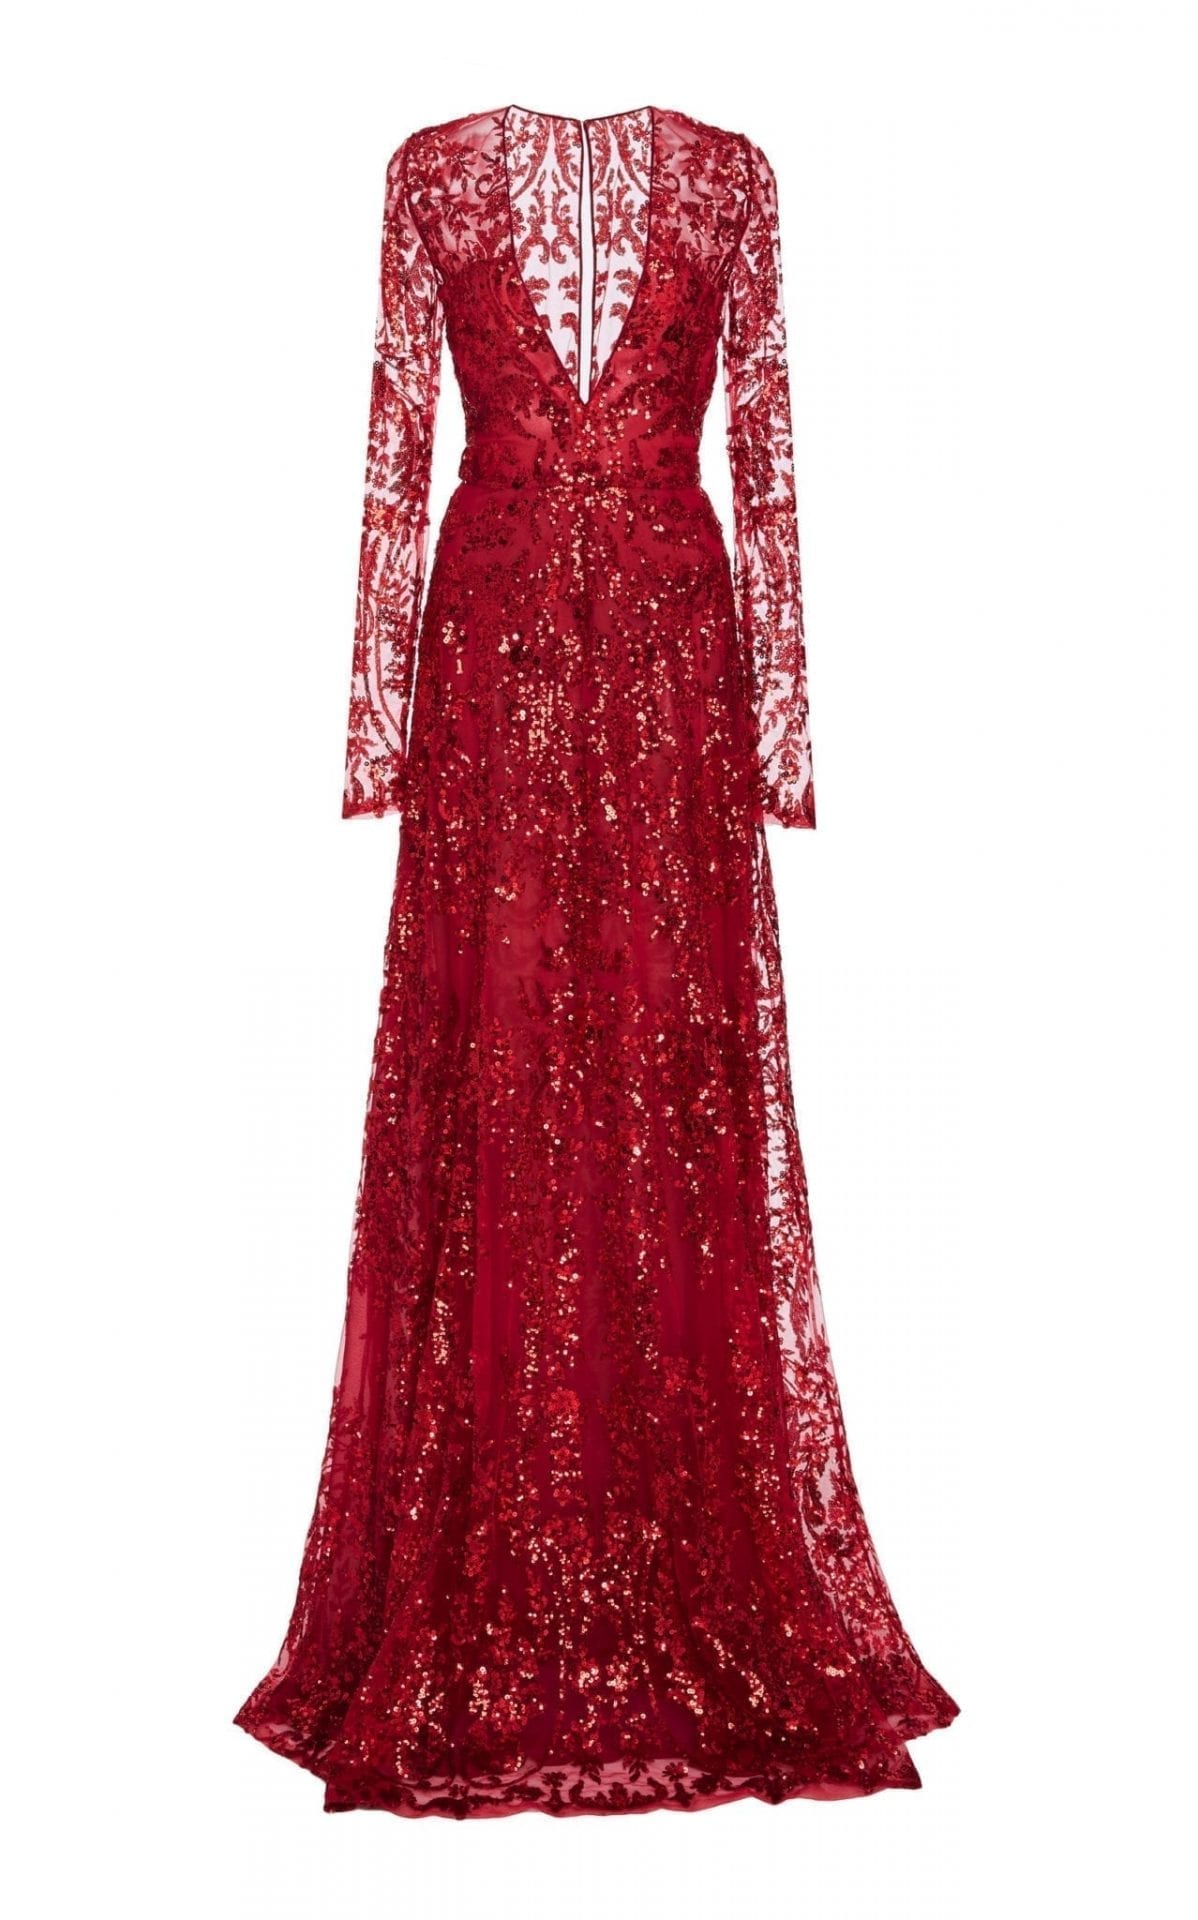 NAEEM KHAN Sequined Chiffon Red Gown 2